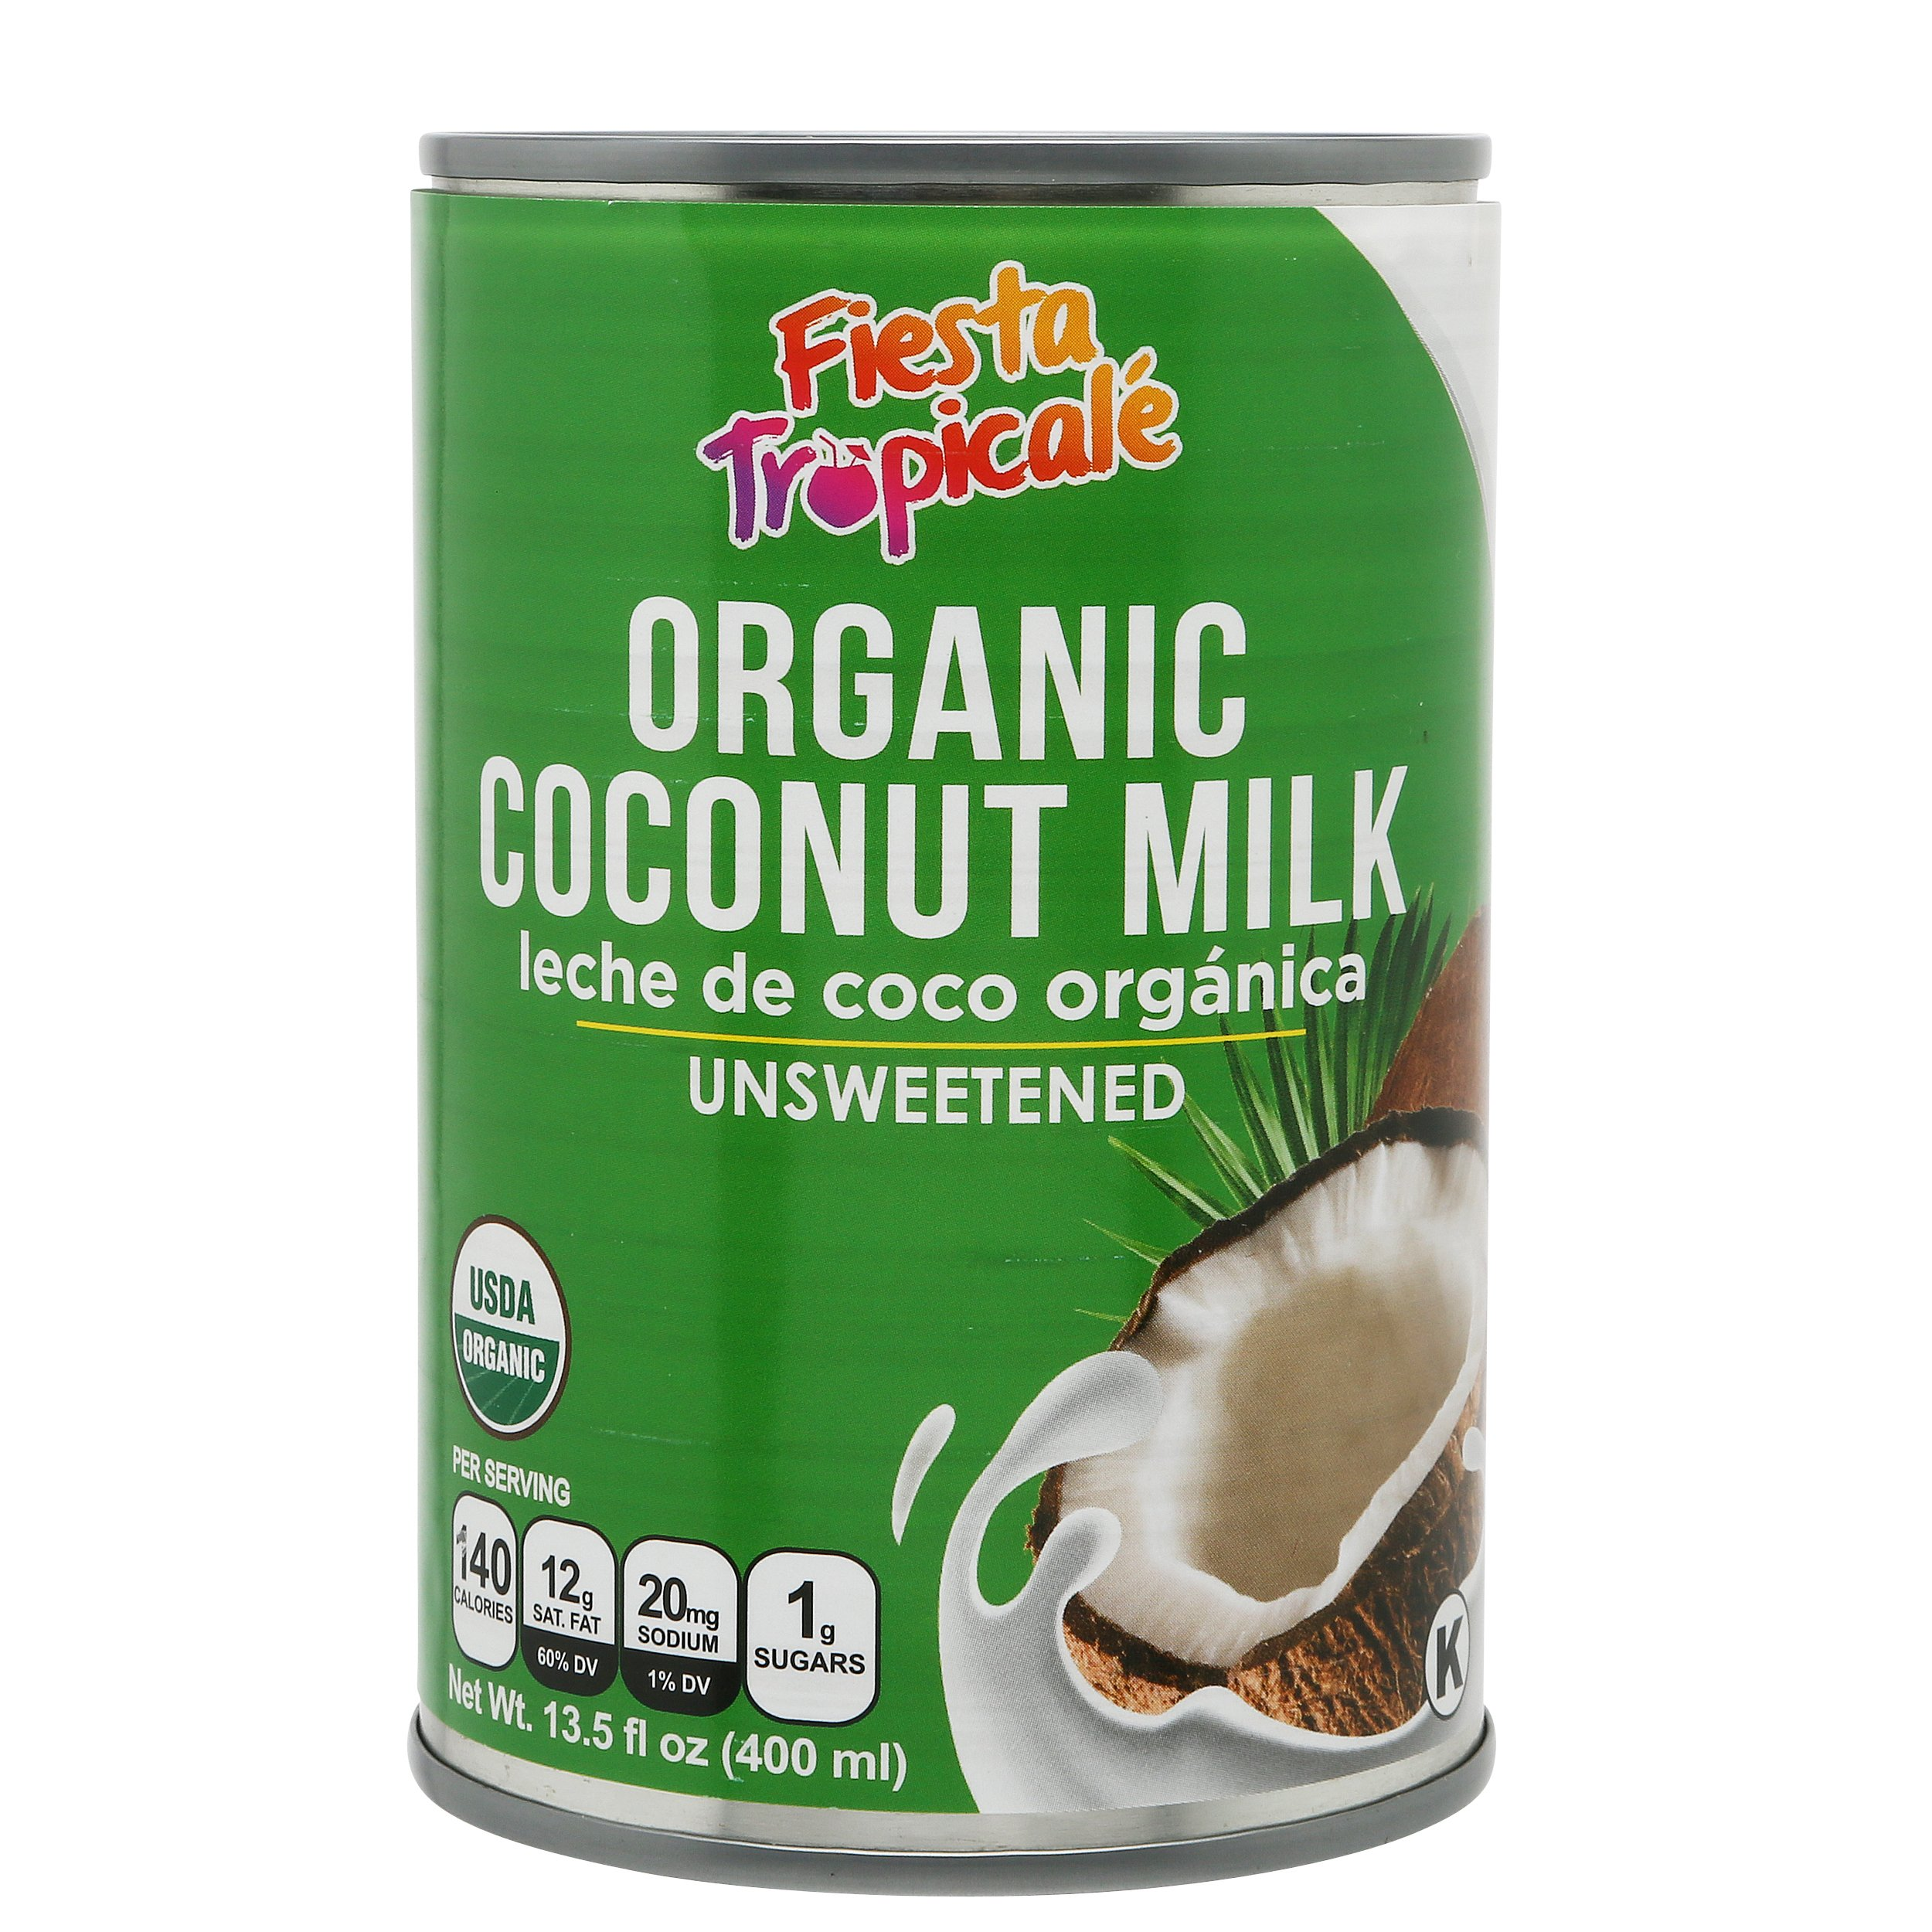 Fiesta Tropicalé Organic Coconut Milk, Unsweetened, 13.5 ounces (Pack of 6)